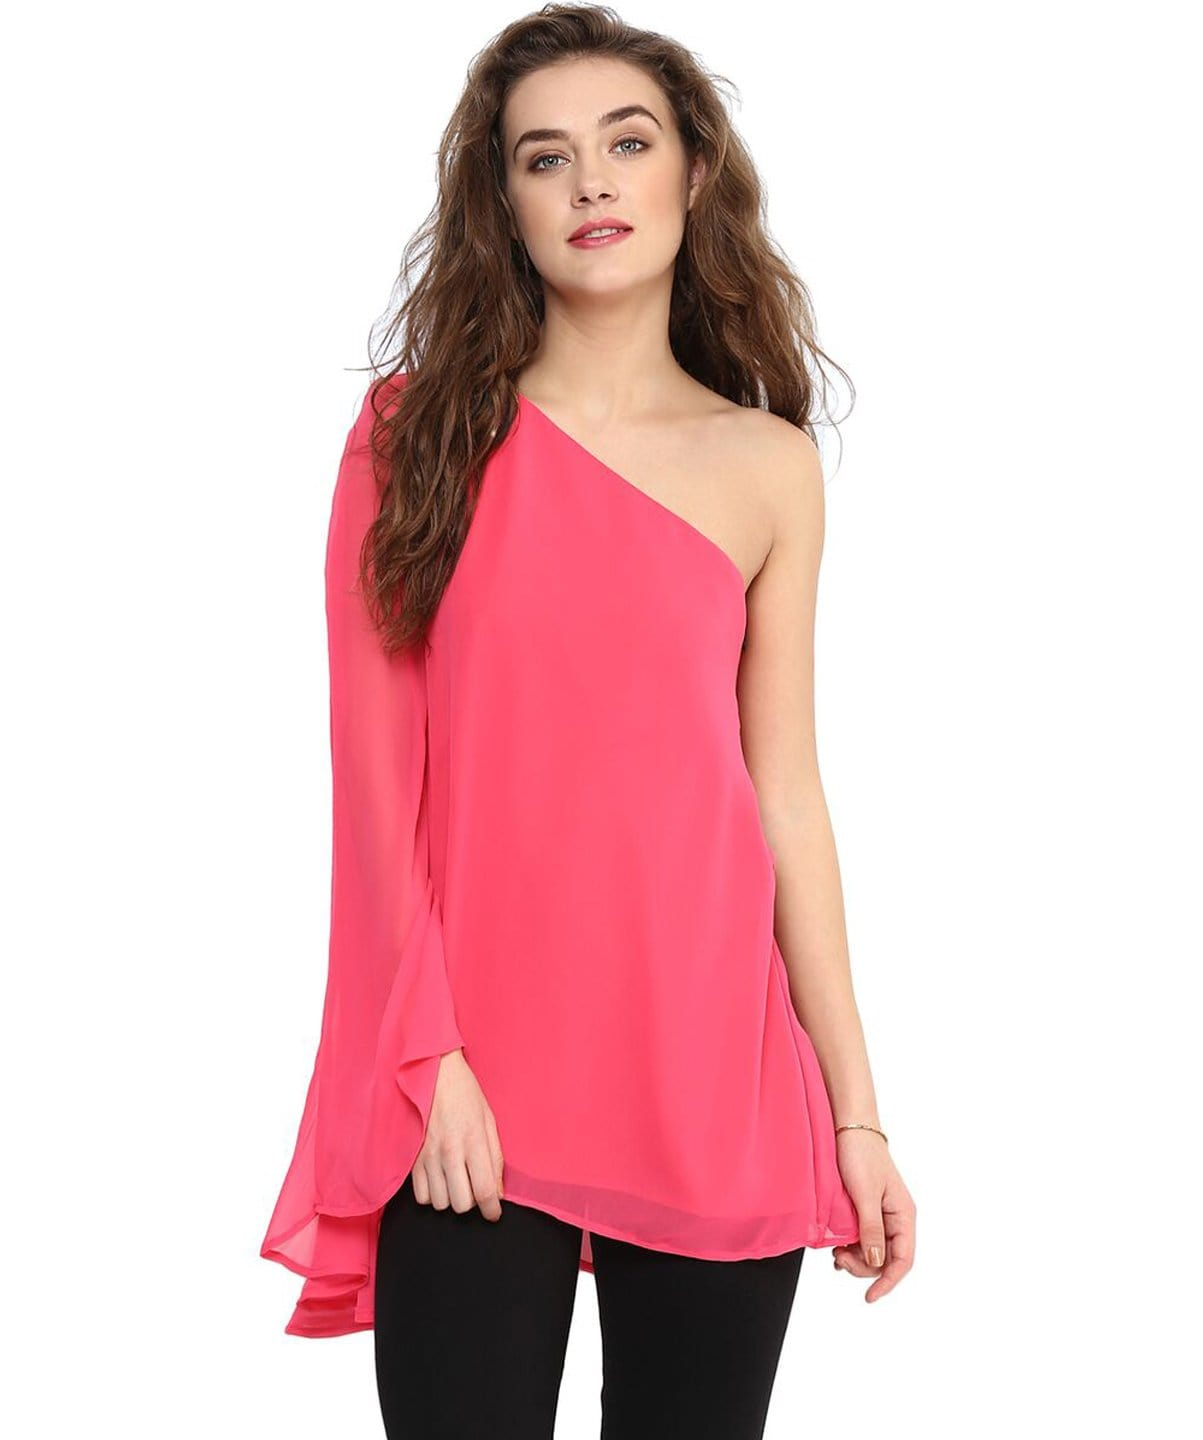 Solid Pink One-shoulder Georgette Top. SALE UNDER 399